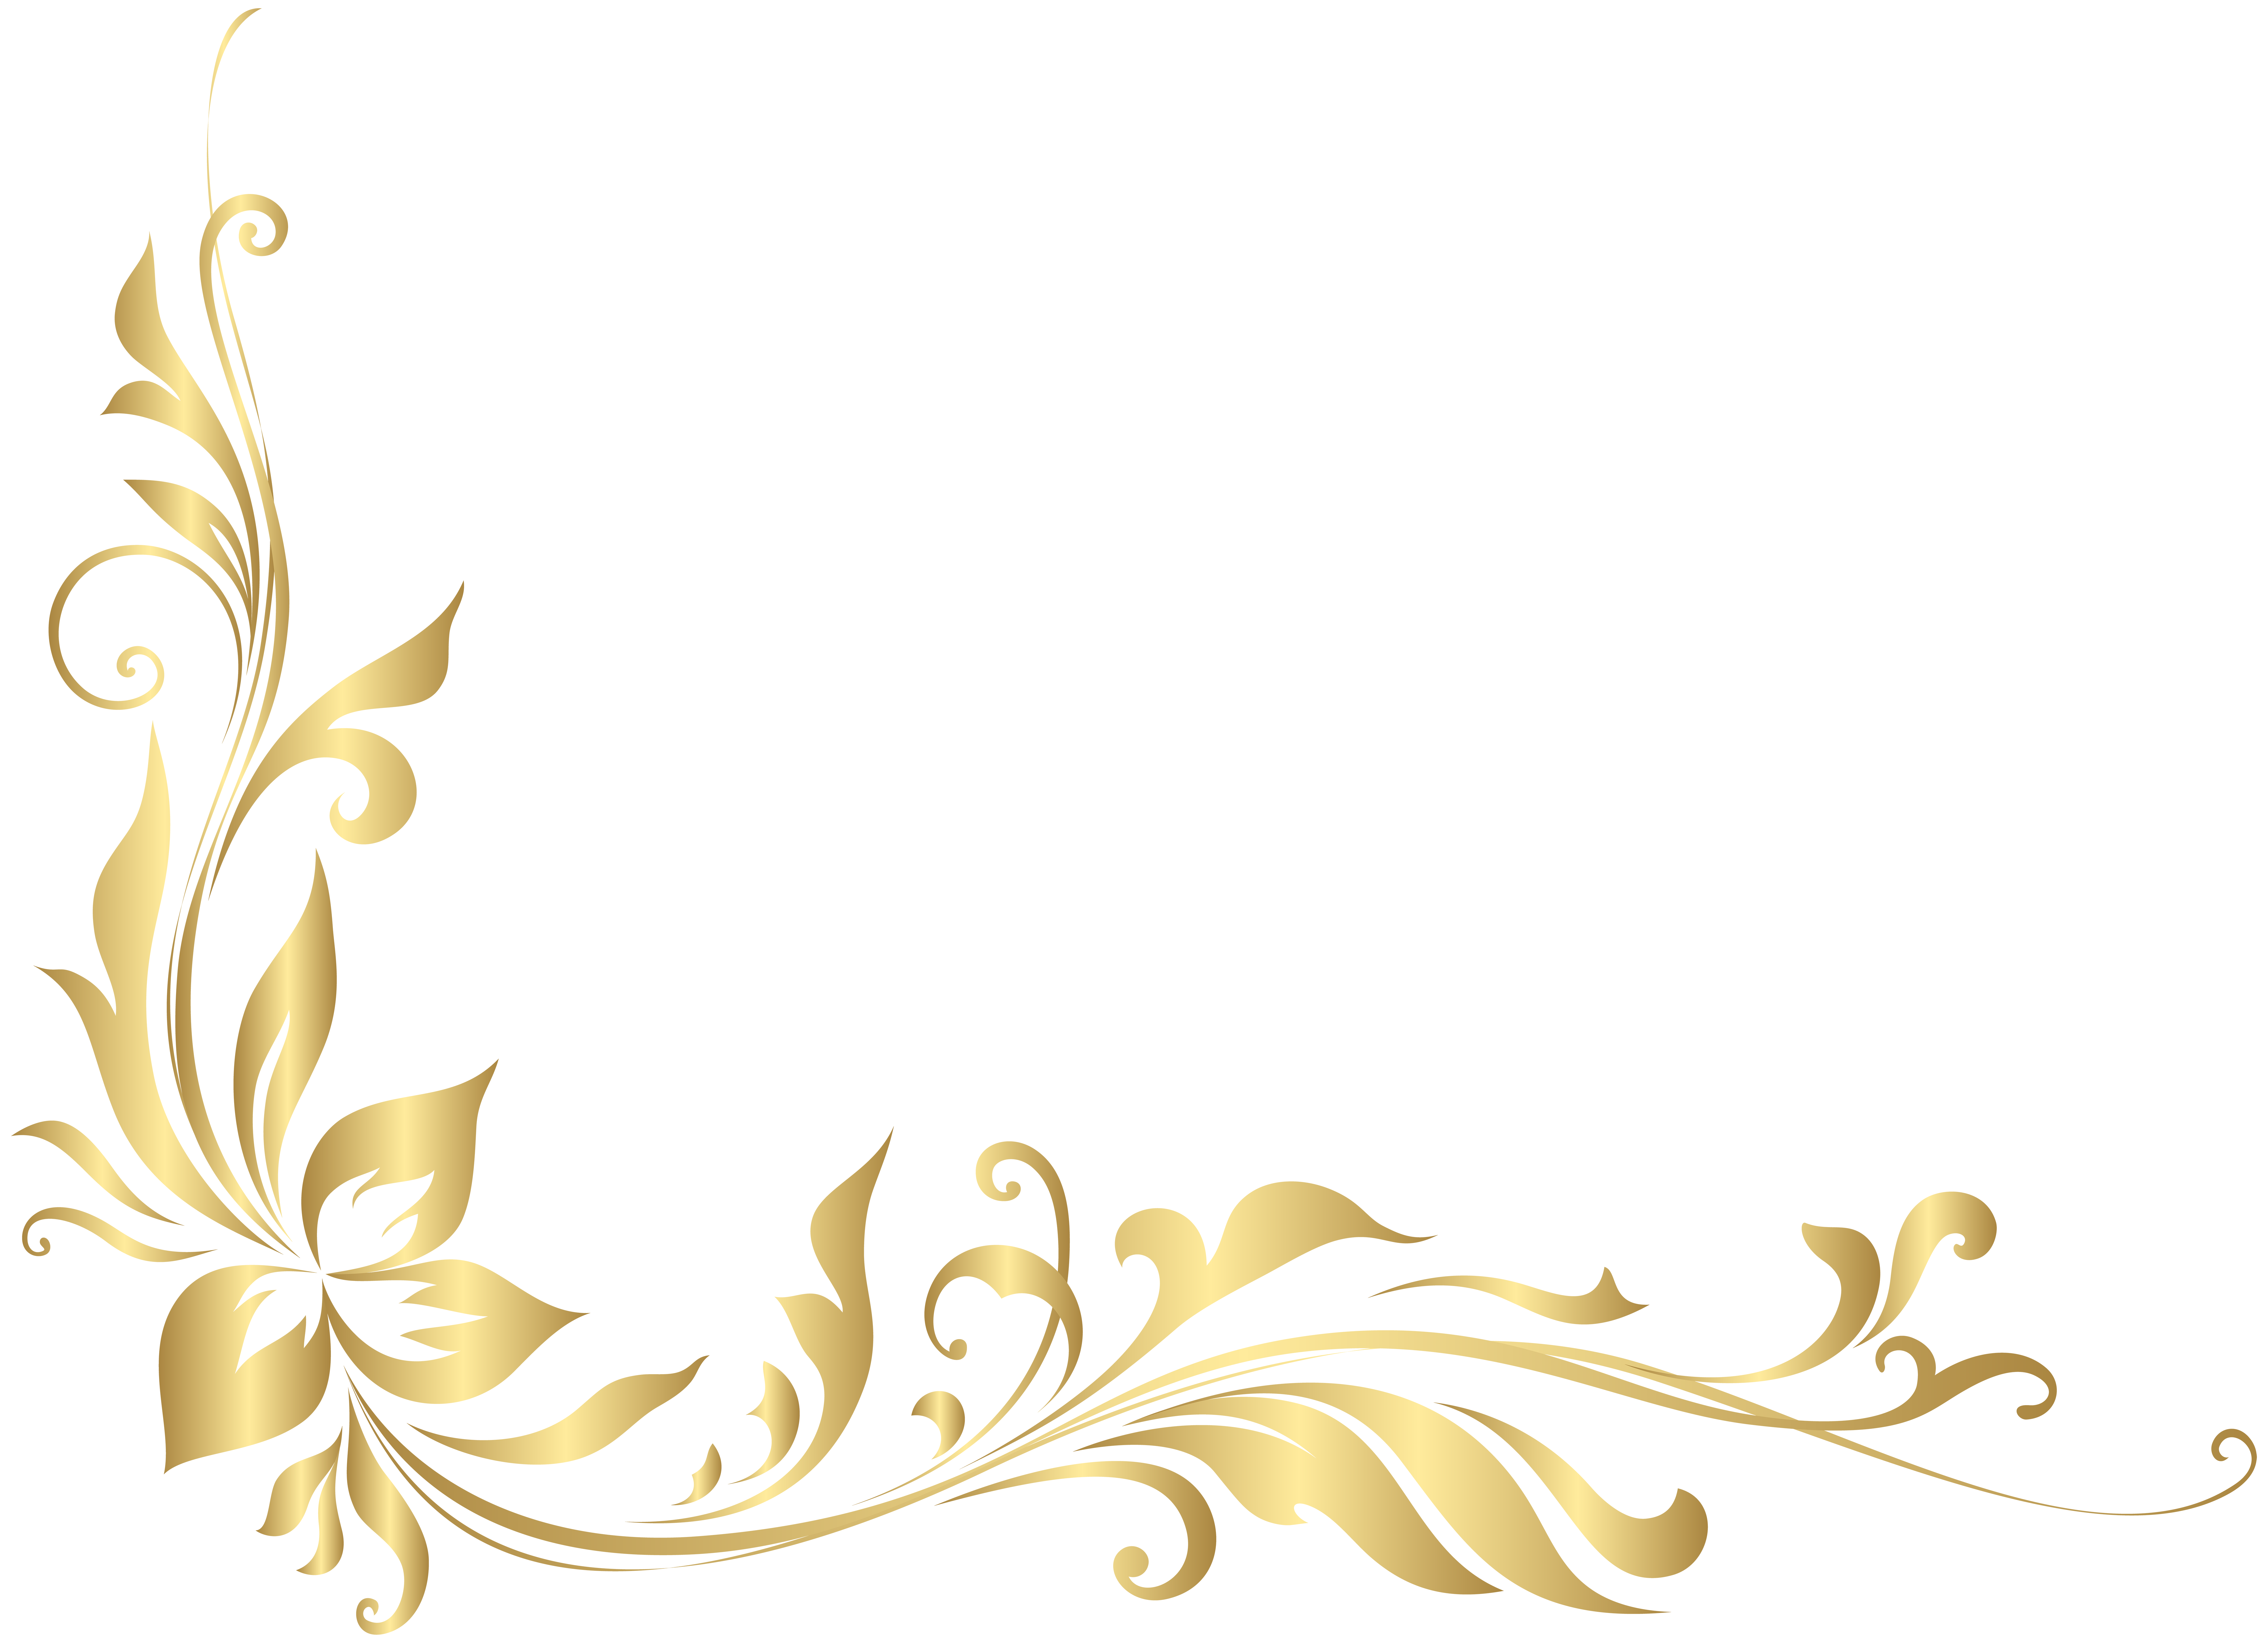 Golden Floral Decoration Transparent Png Clip Art Gallery Yopriceville High Quality Images And Transparent Png Fre Clip Art Floral Illustration Art Design